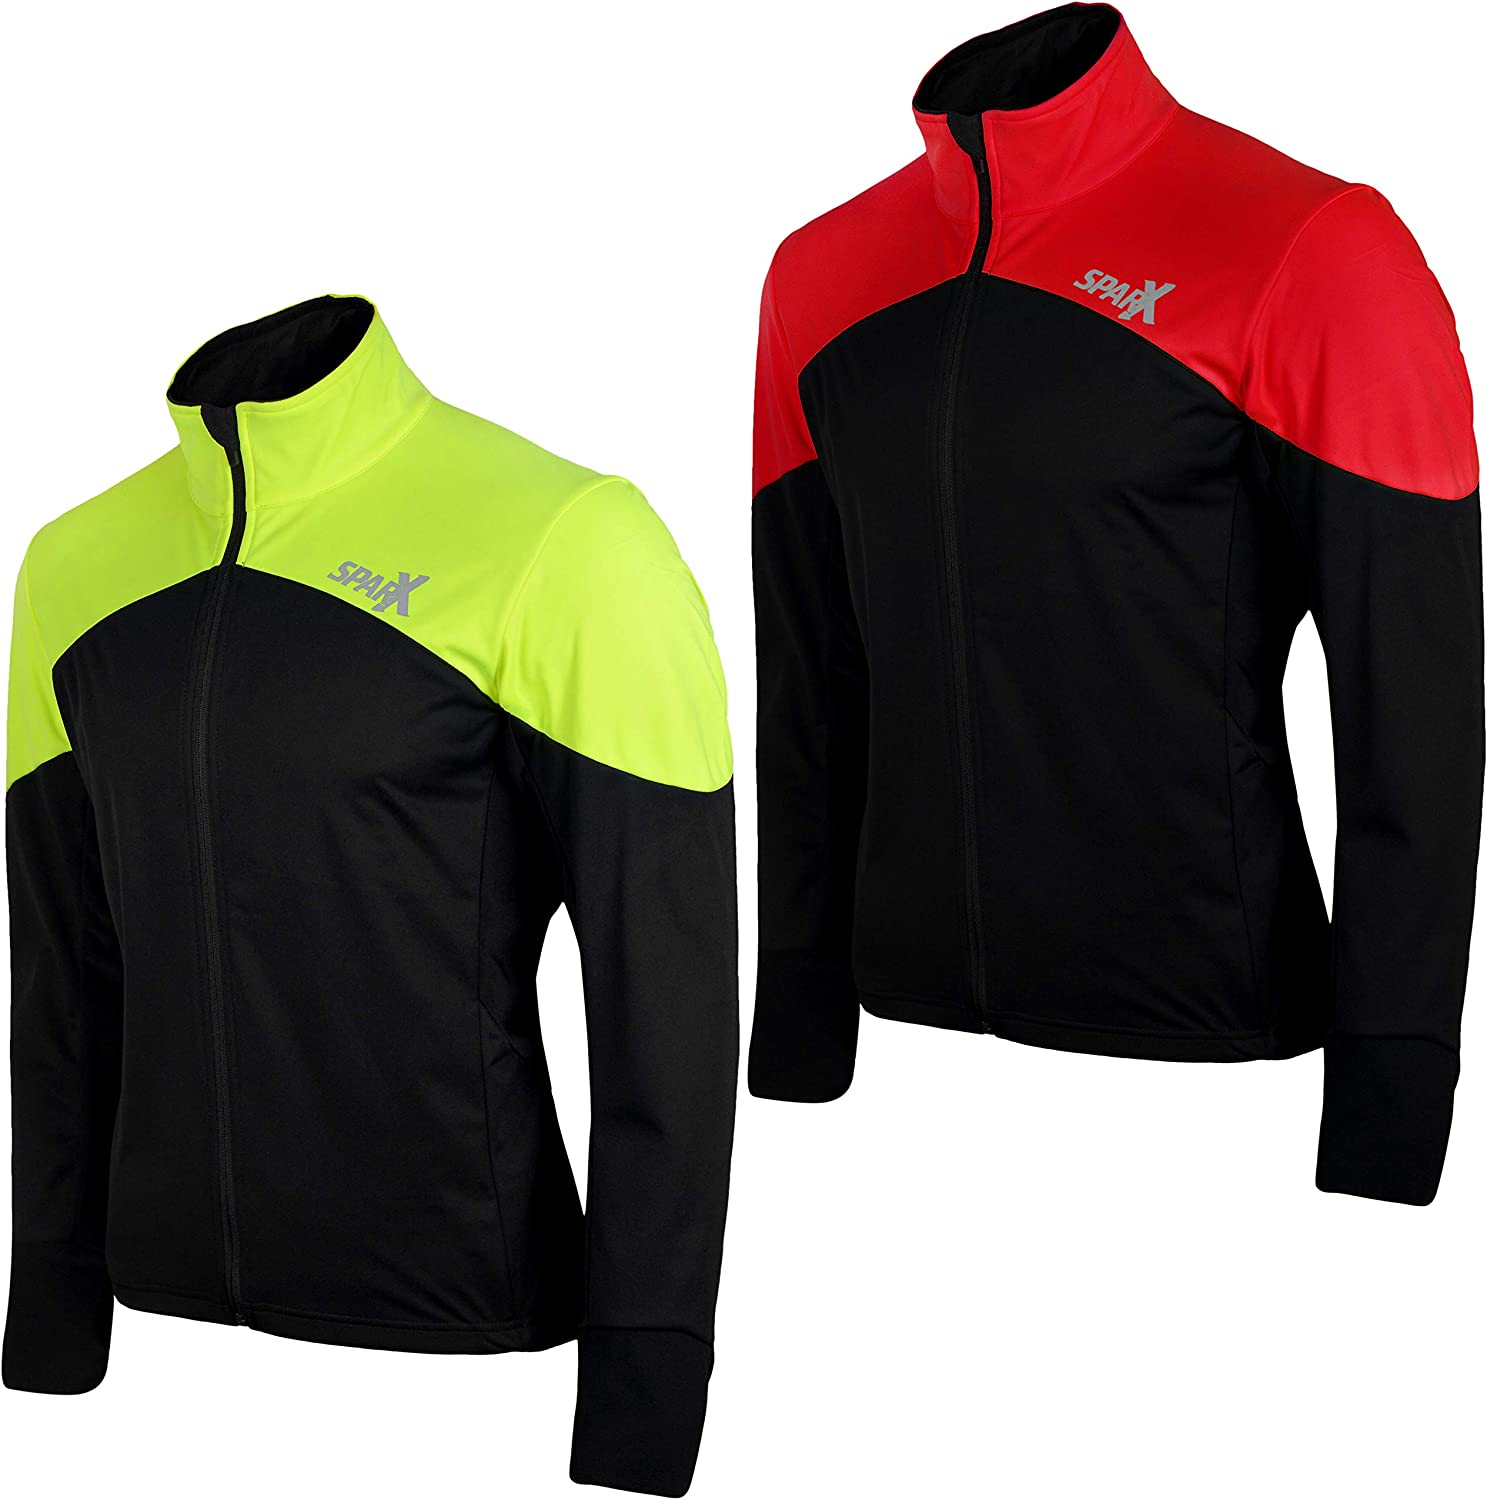 Sparx Max 48% OFF Men Omaha Mall Cycling Jacket Windbreake Thermal Insulated Breathable